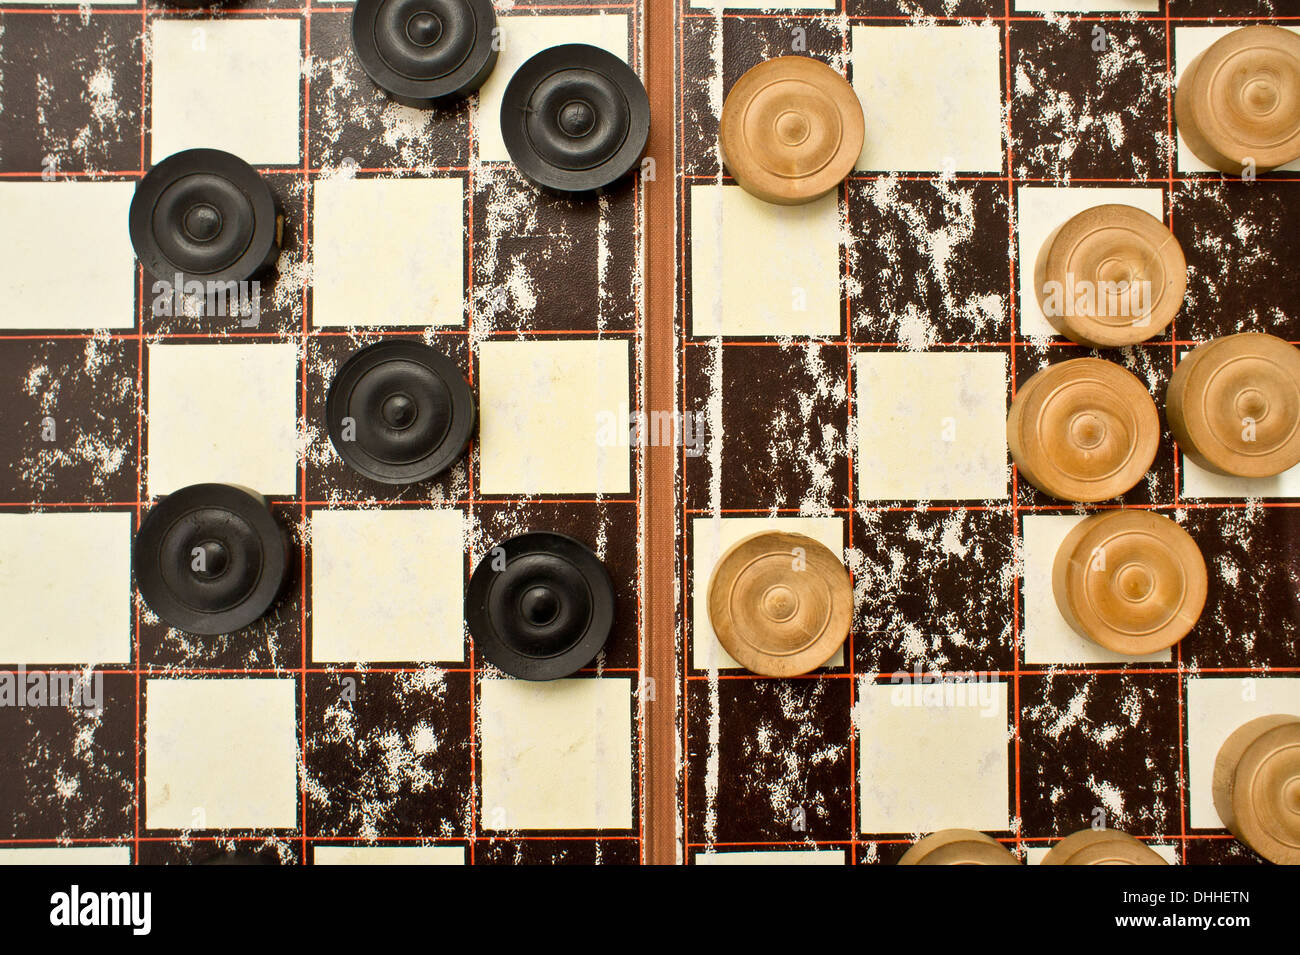 Draughts pieces and a board as a background image - Stock Image